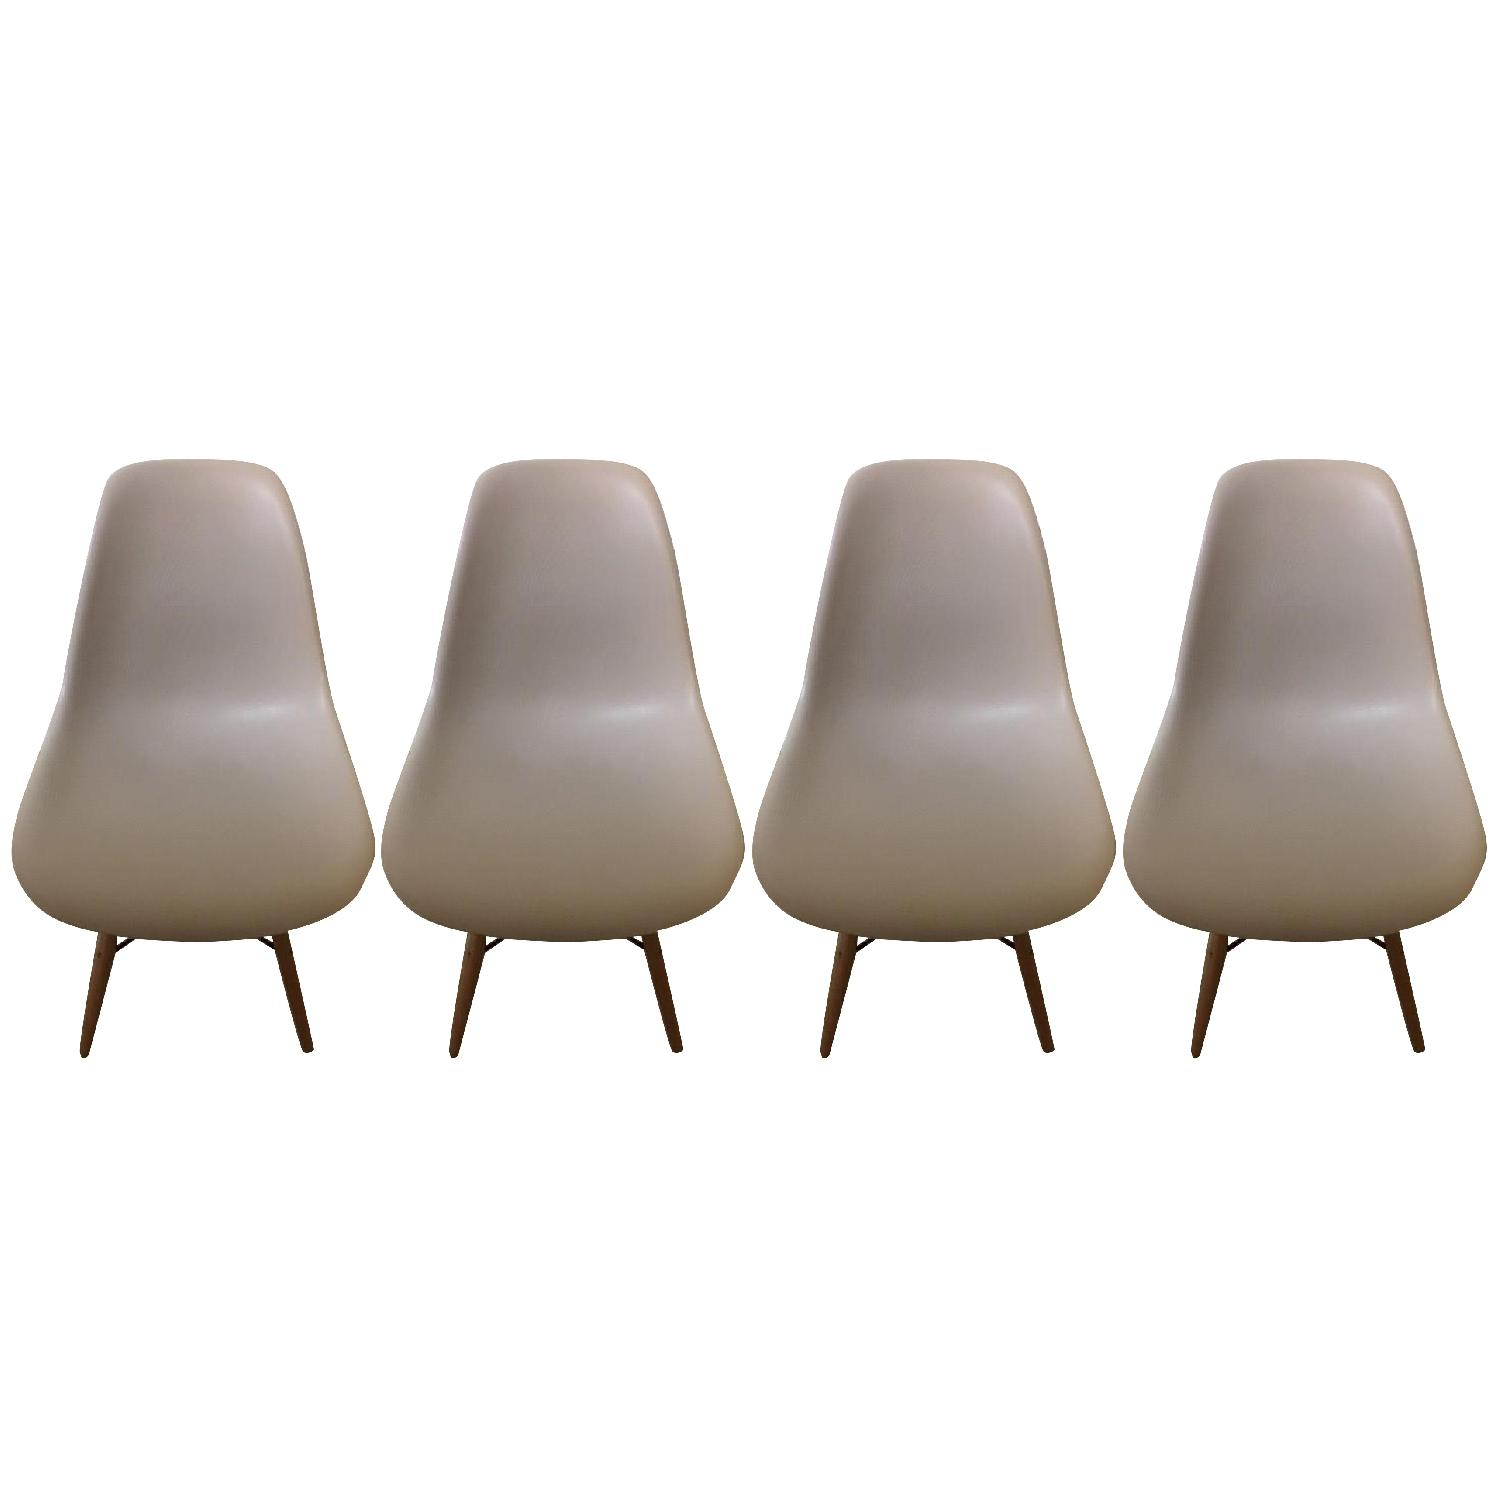 Gold Sparrow Lucas Beige Wood Grain Accent Chairs - Set Of 4 - image-0